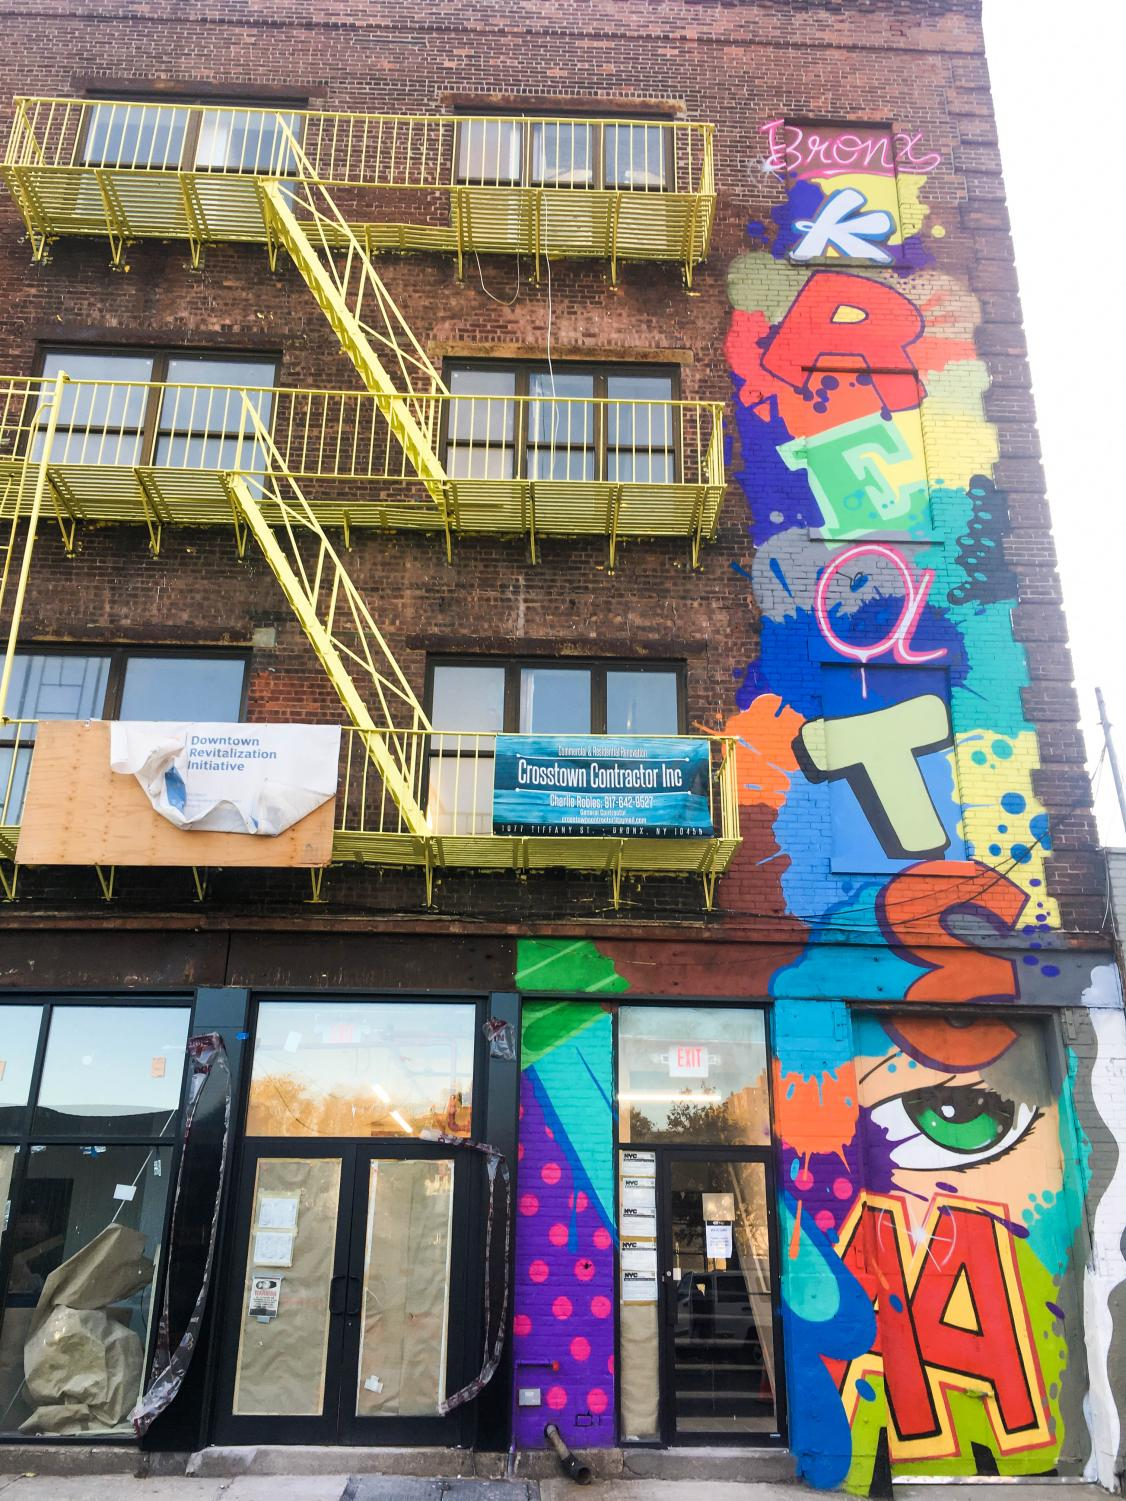 Bronx Kreate provides studio space to Bronx artists.